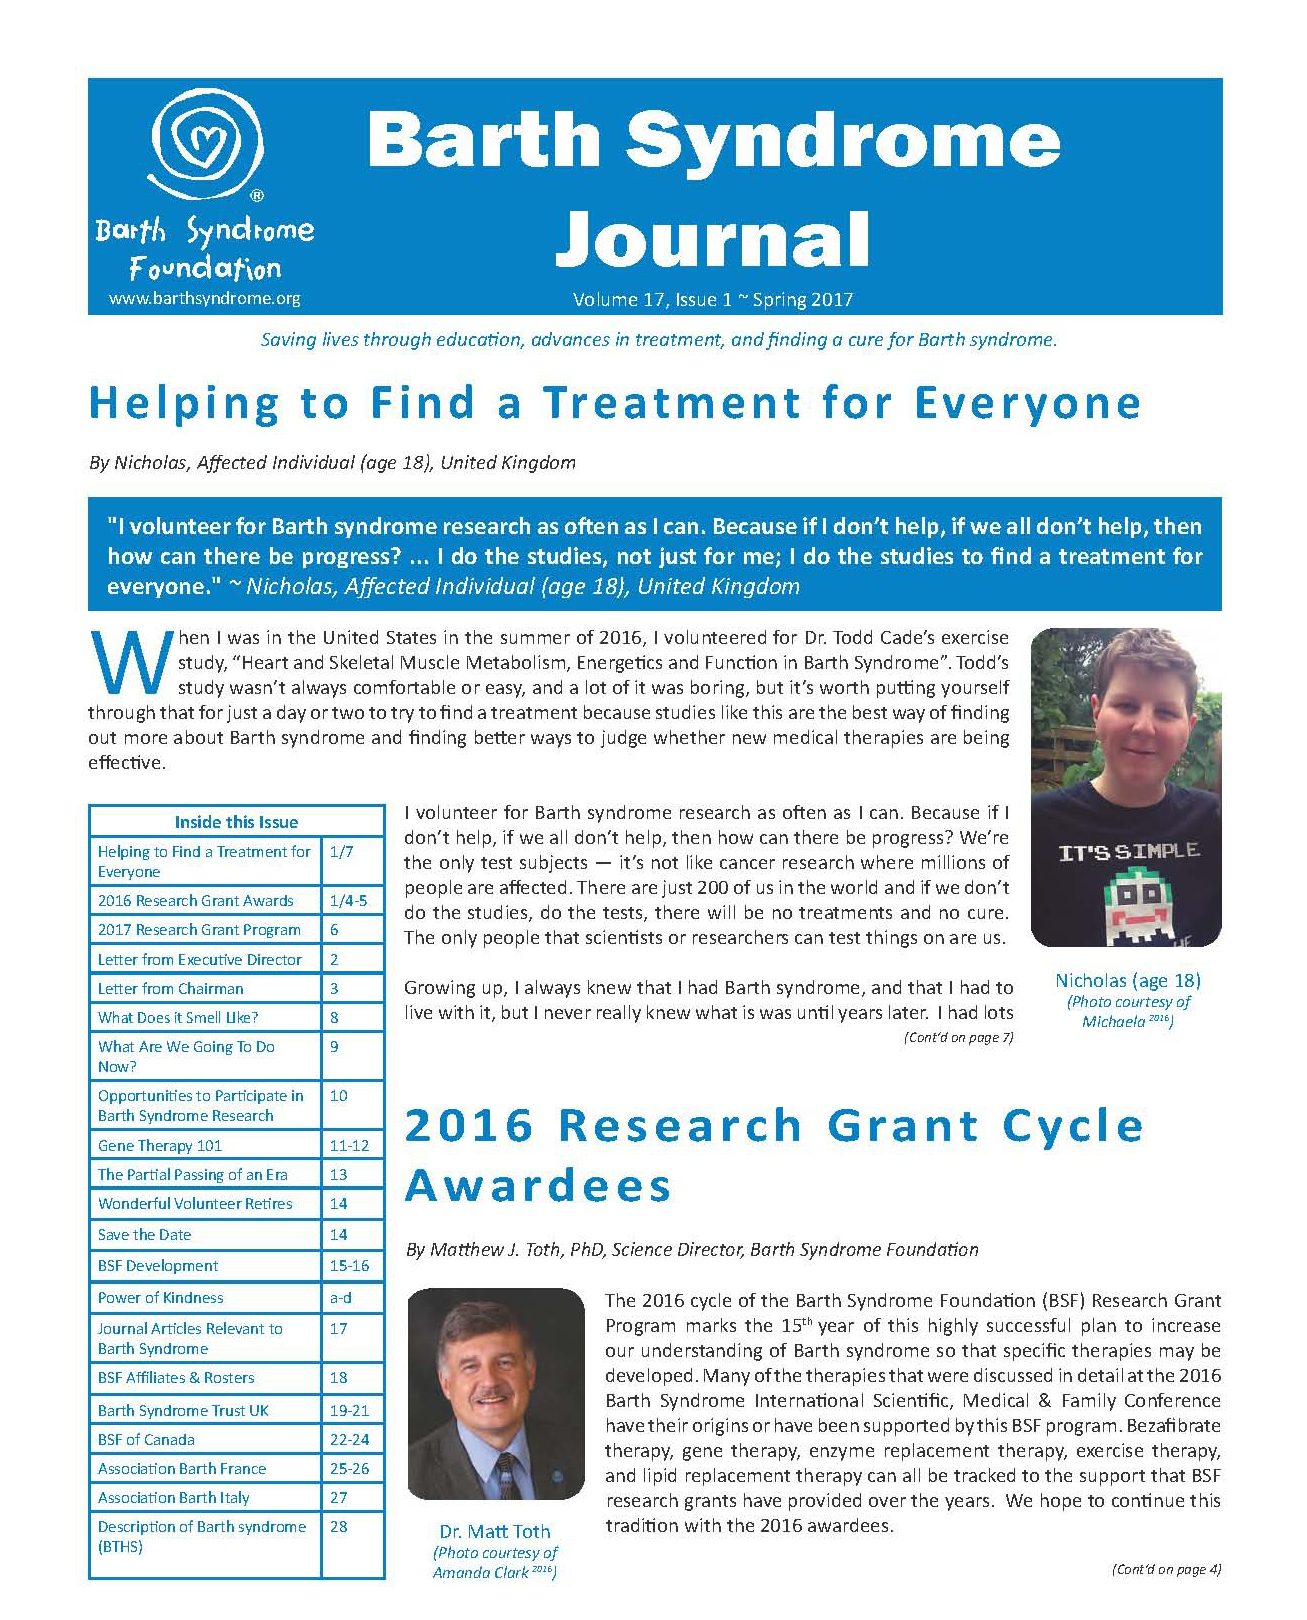 Barth Syndrome Journal Volume 17 Issue 1